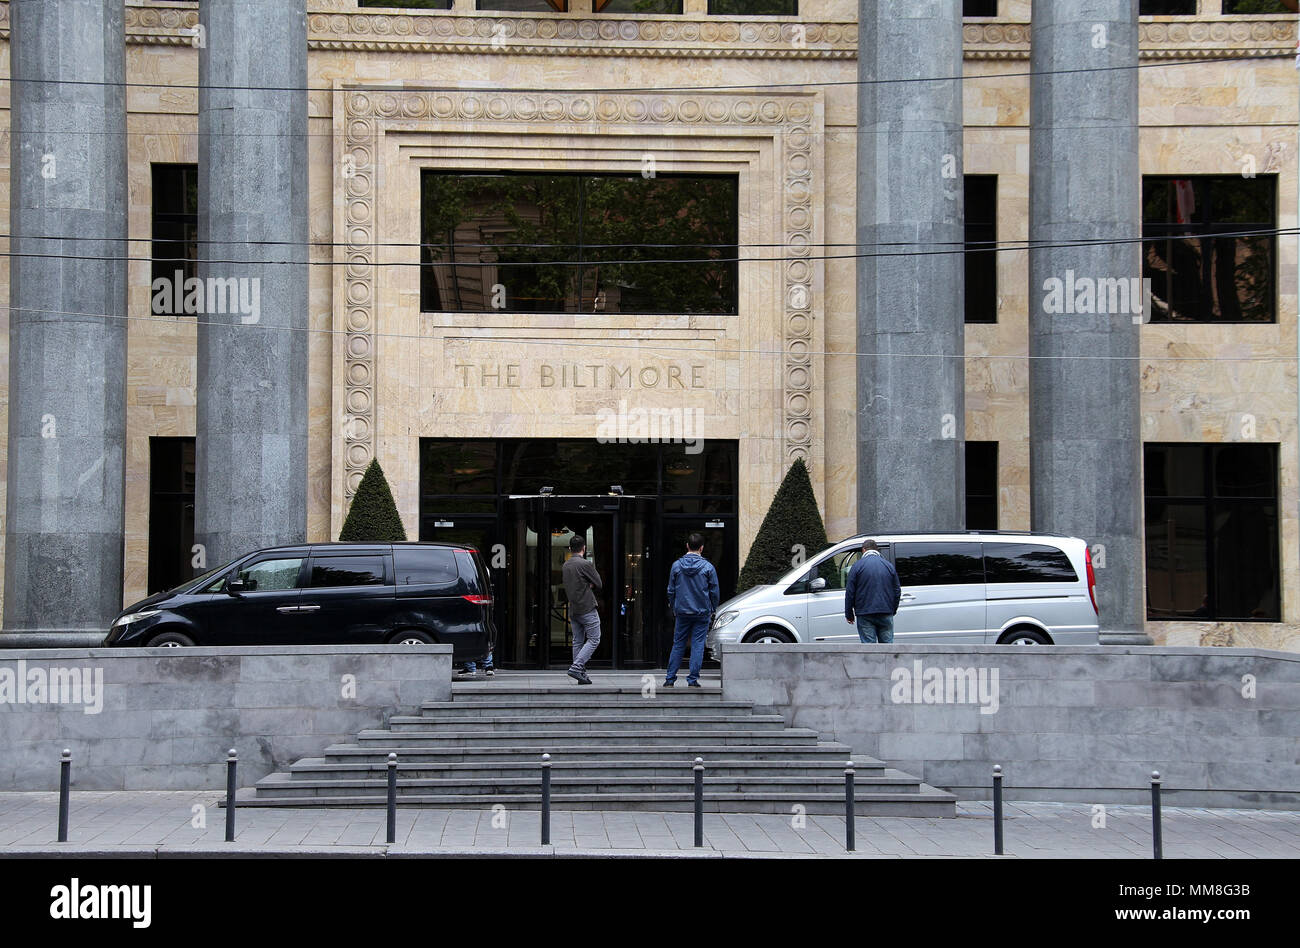 The Biltmore Hotel in Tbilisi - Stock Image